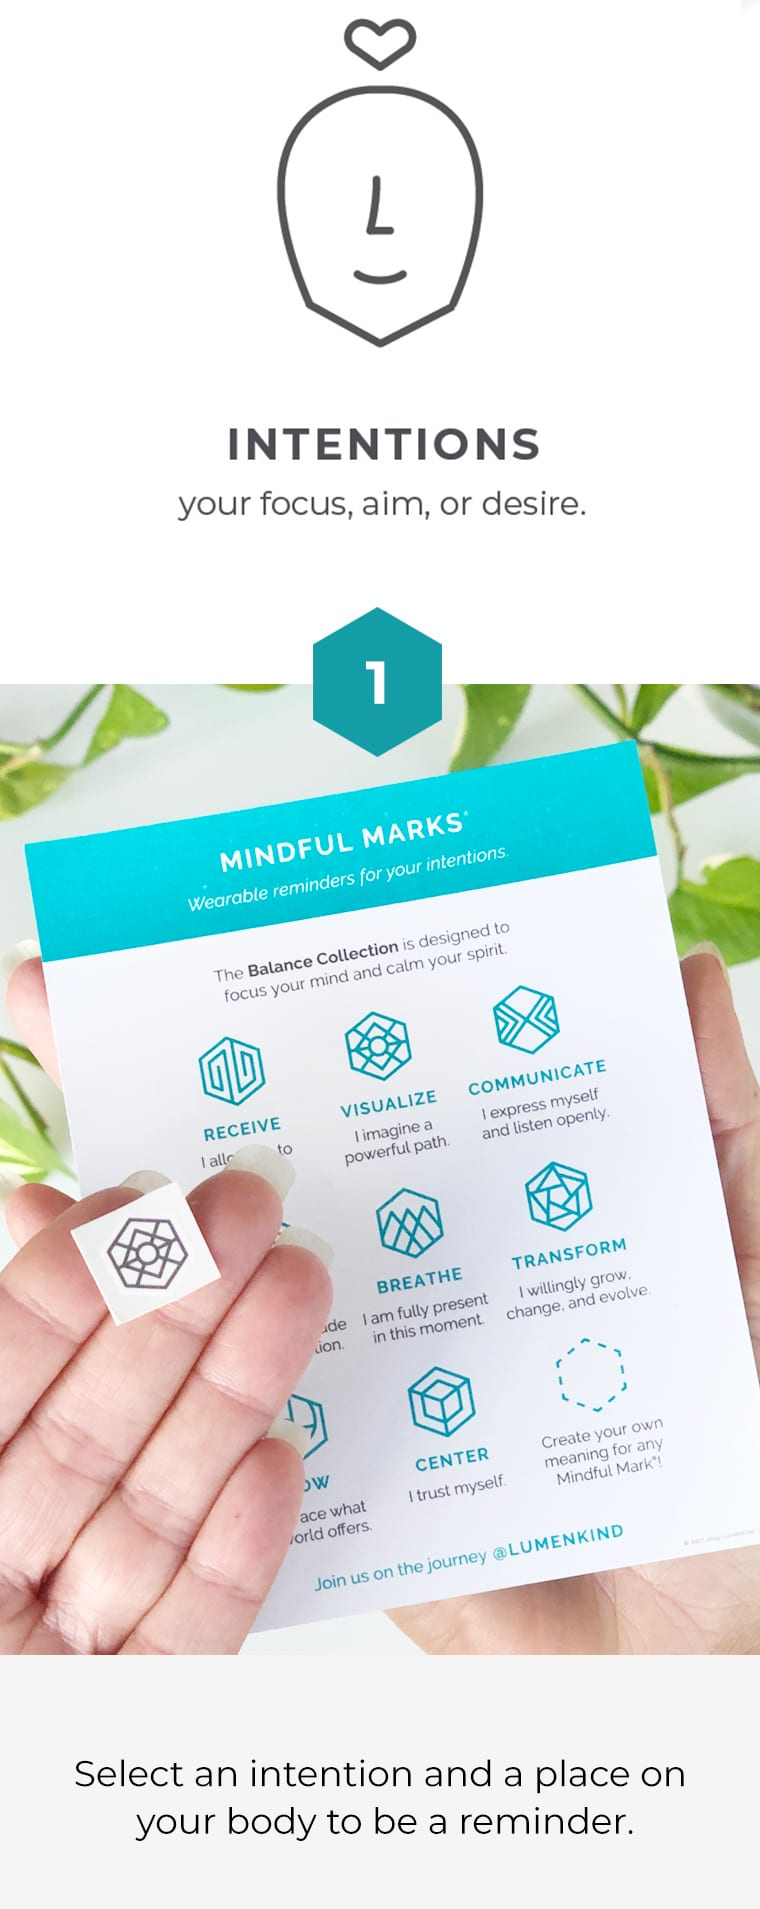 How to apply Mindful Marks part 1